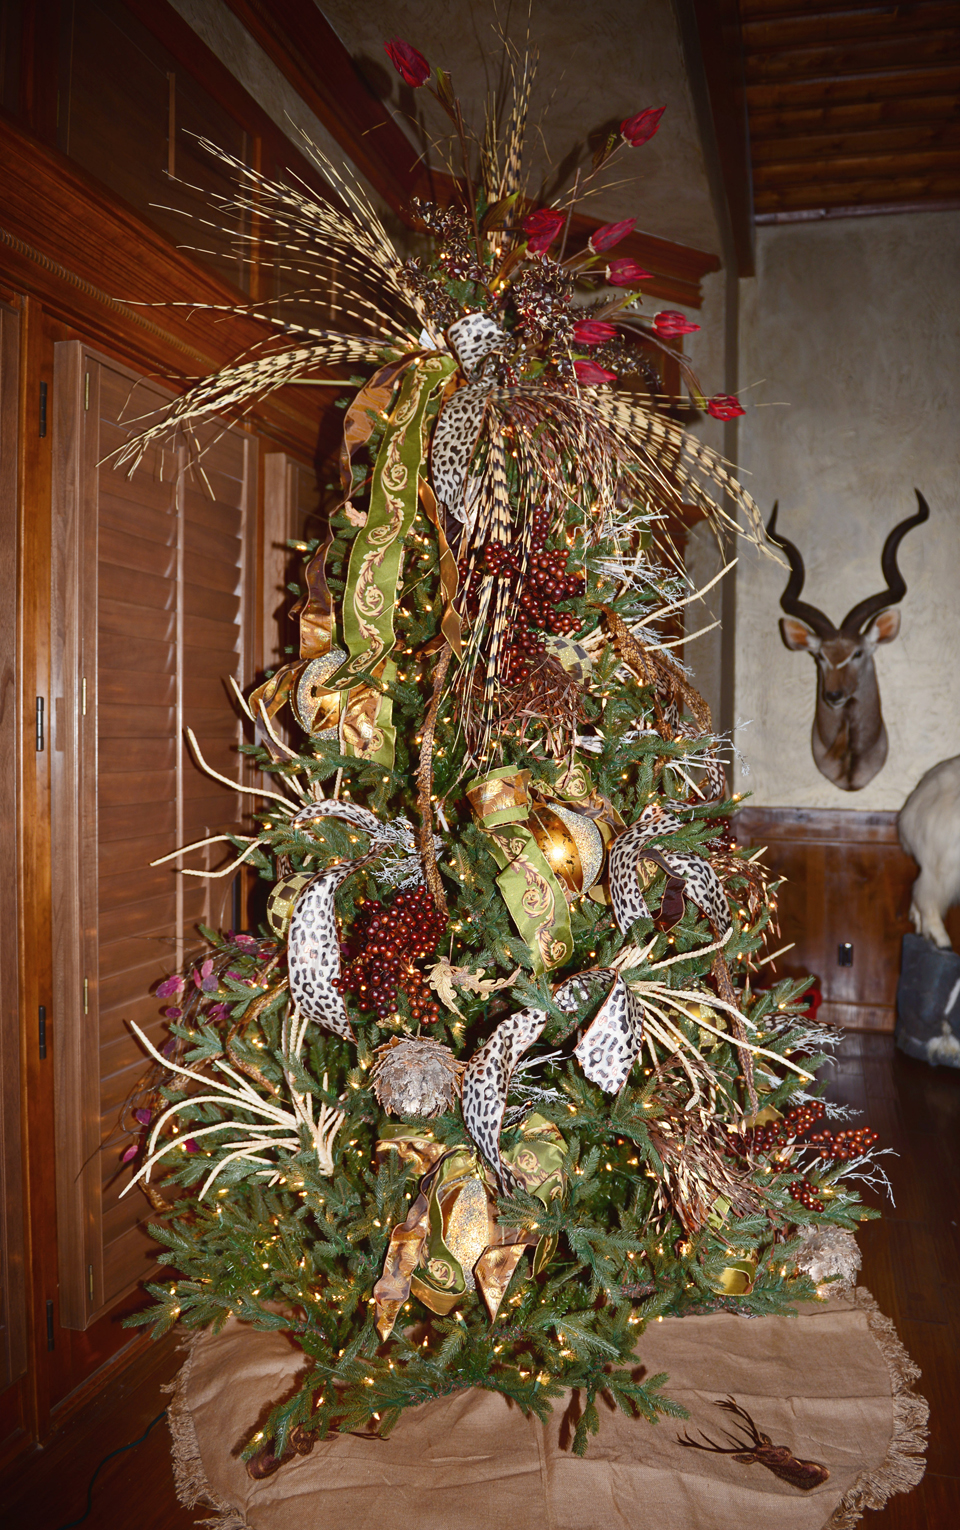 Christmas decorations b whimsy for Whimsical decor